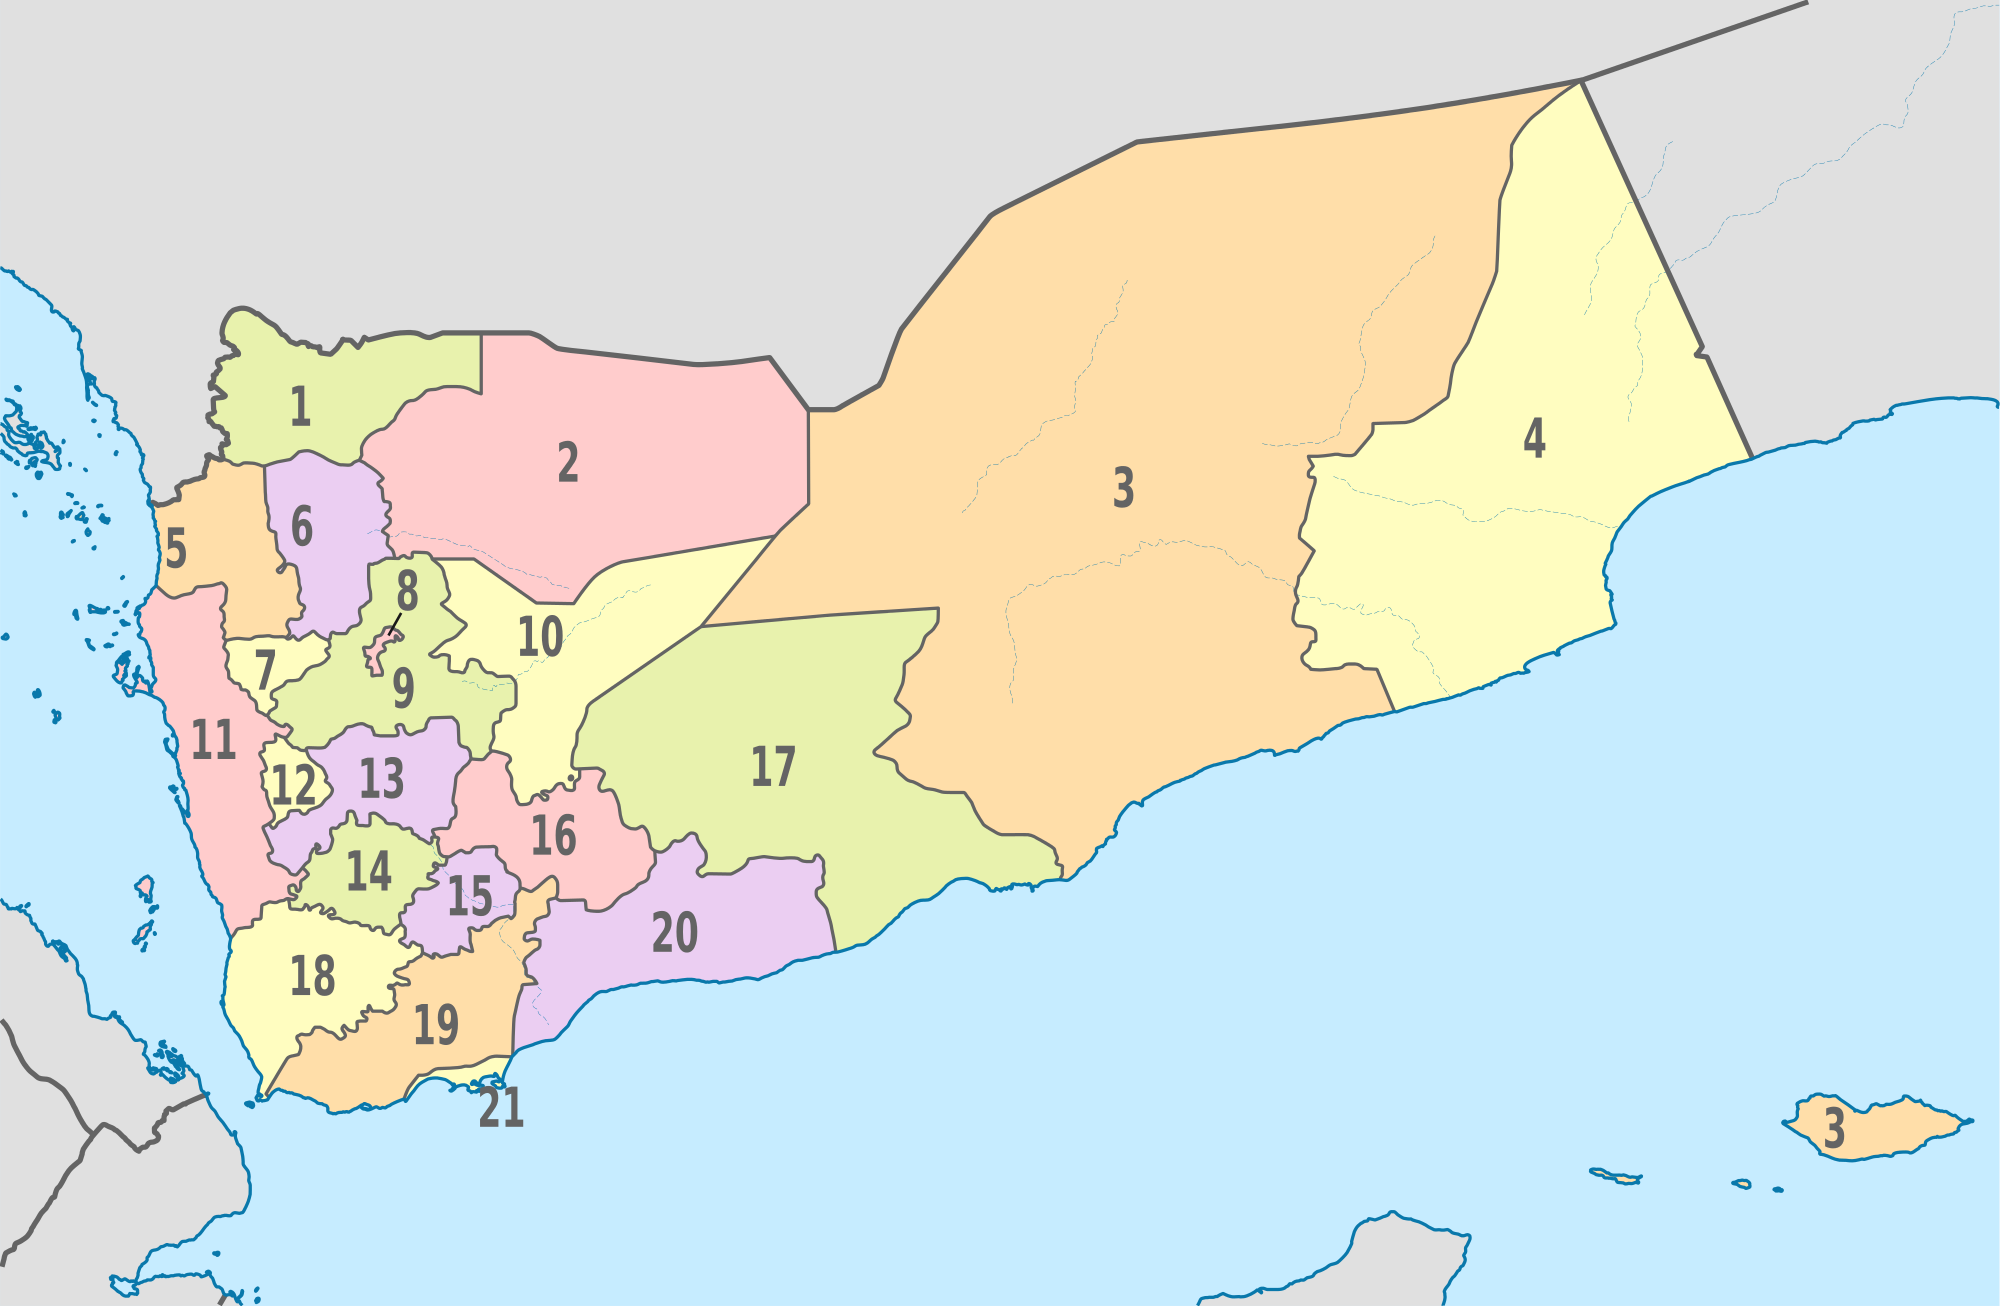 Yemen Administrative divisions Map